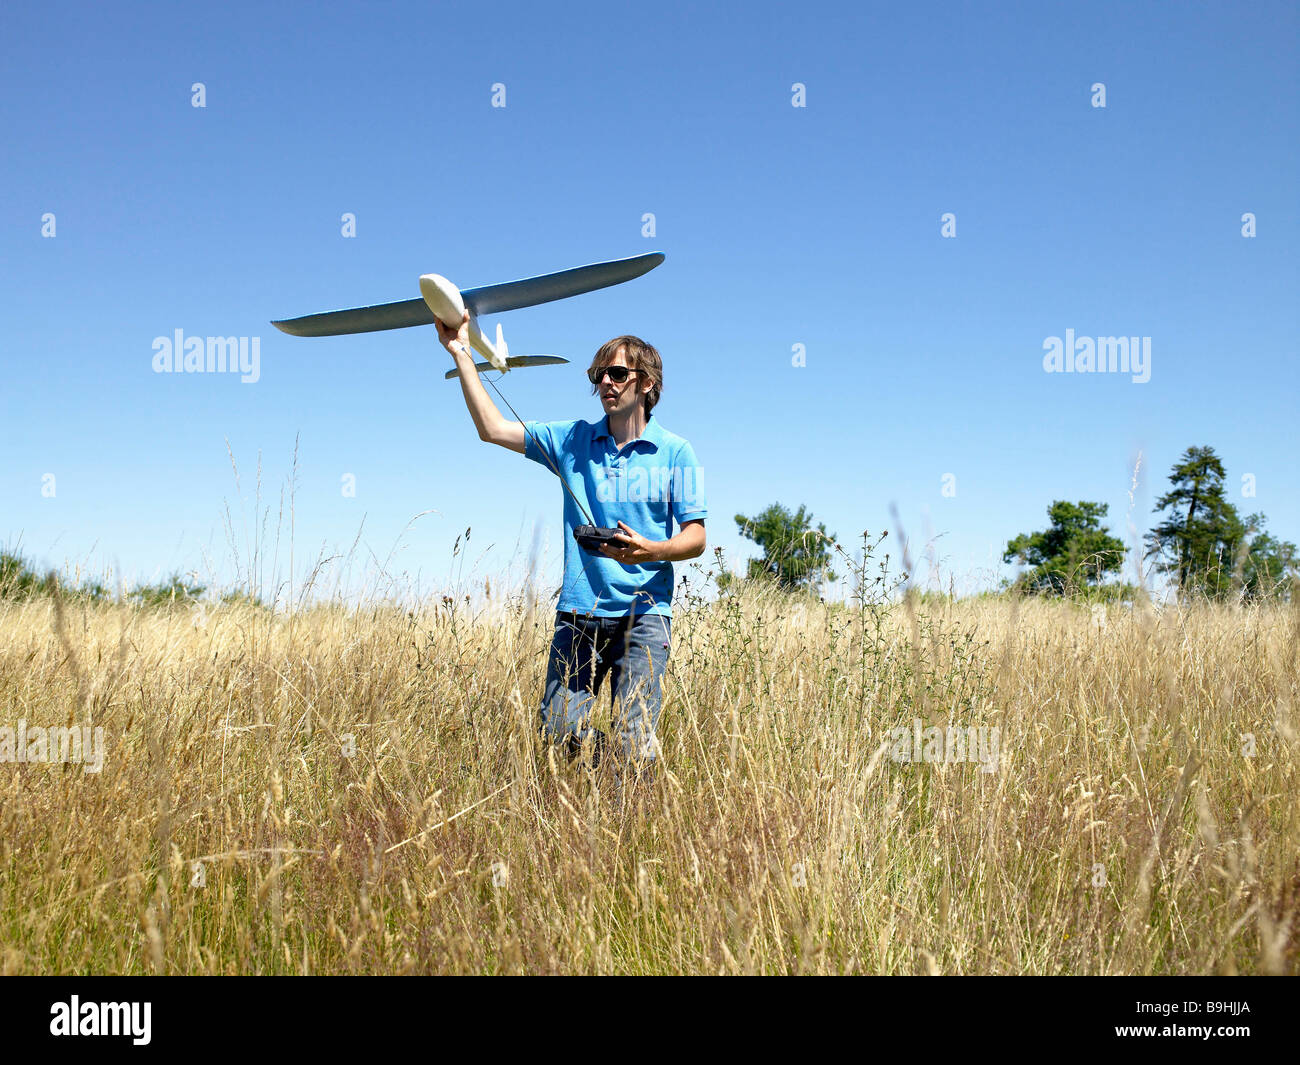 Man playing with remote-controlled plane - Stock Image